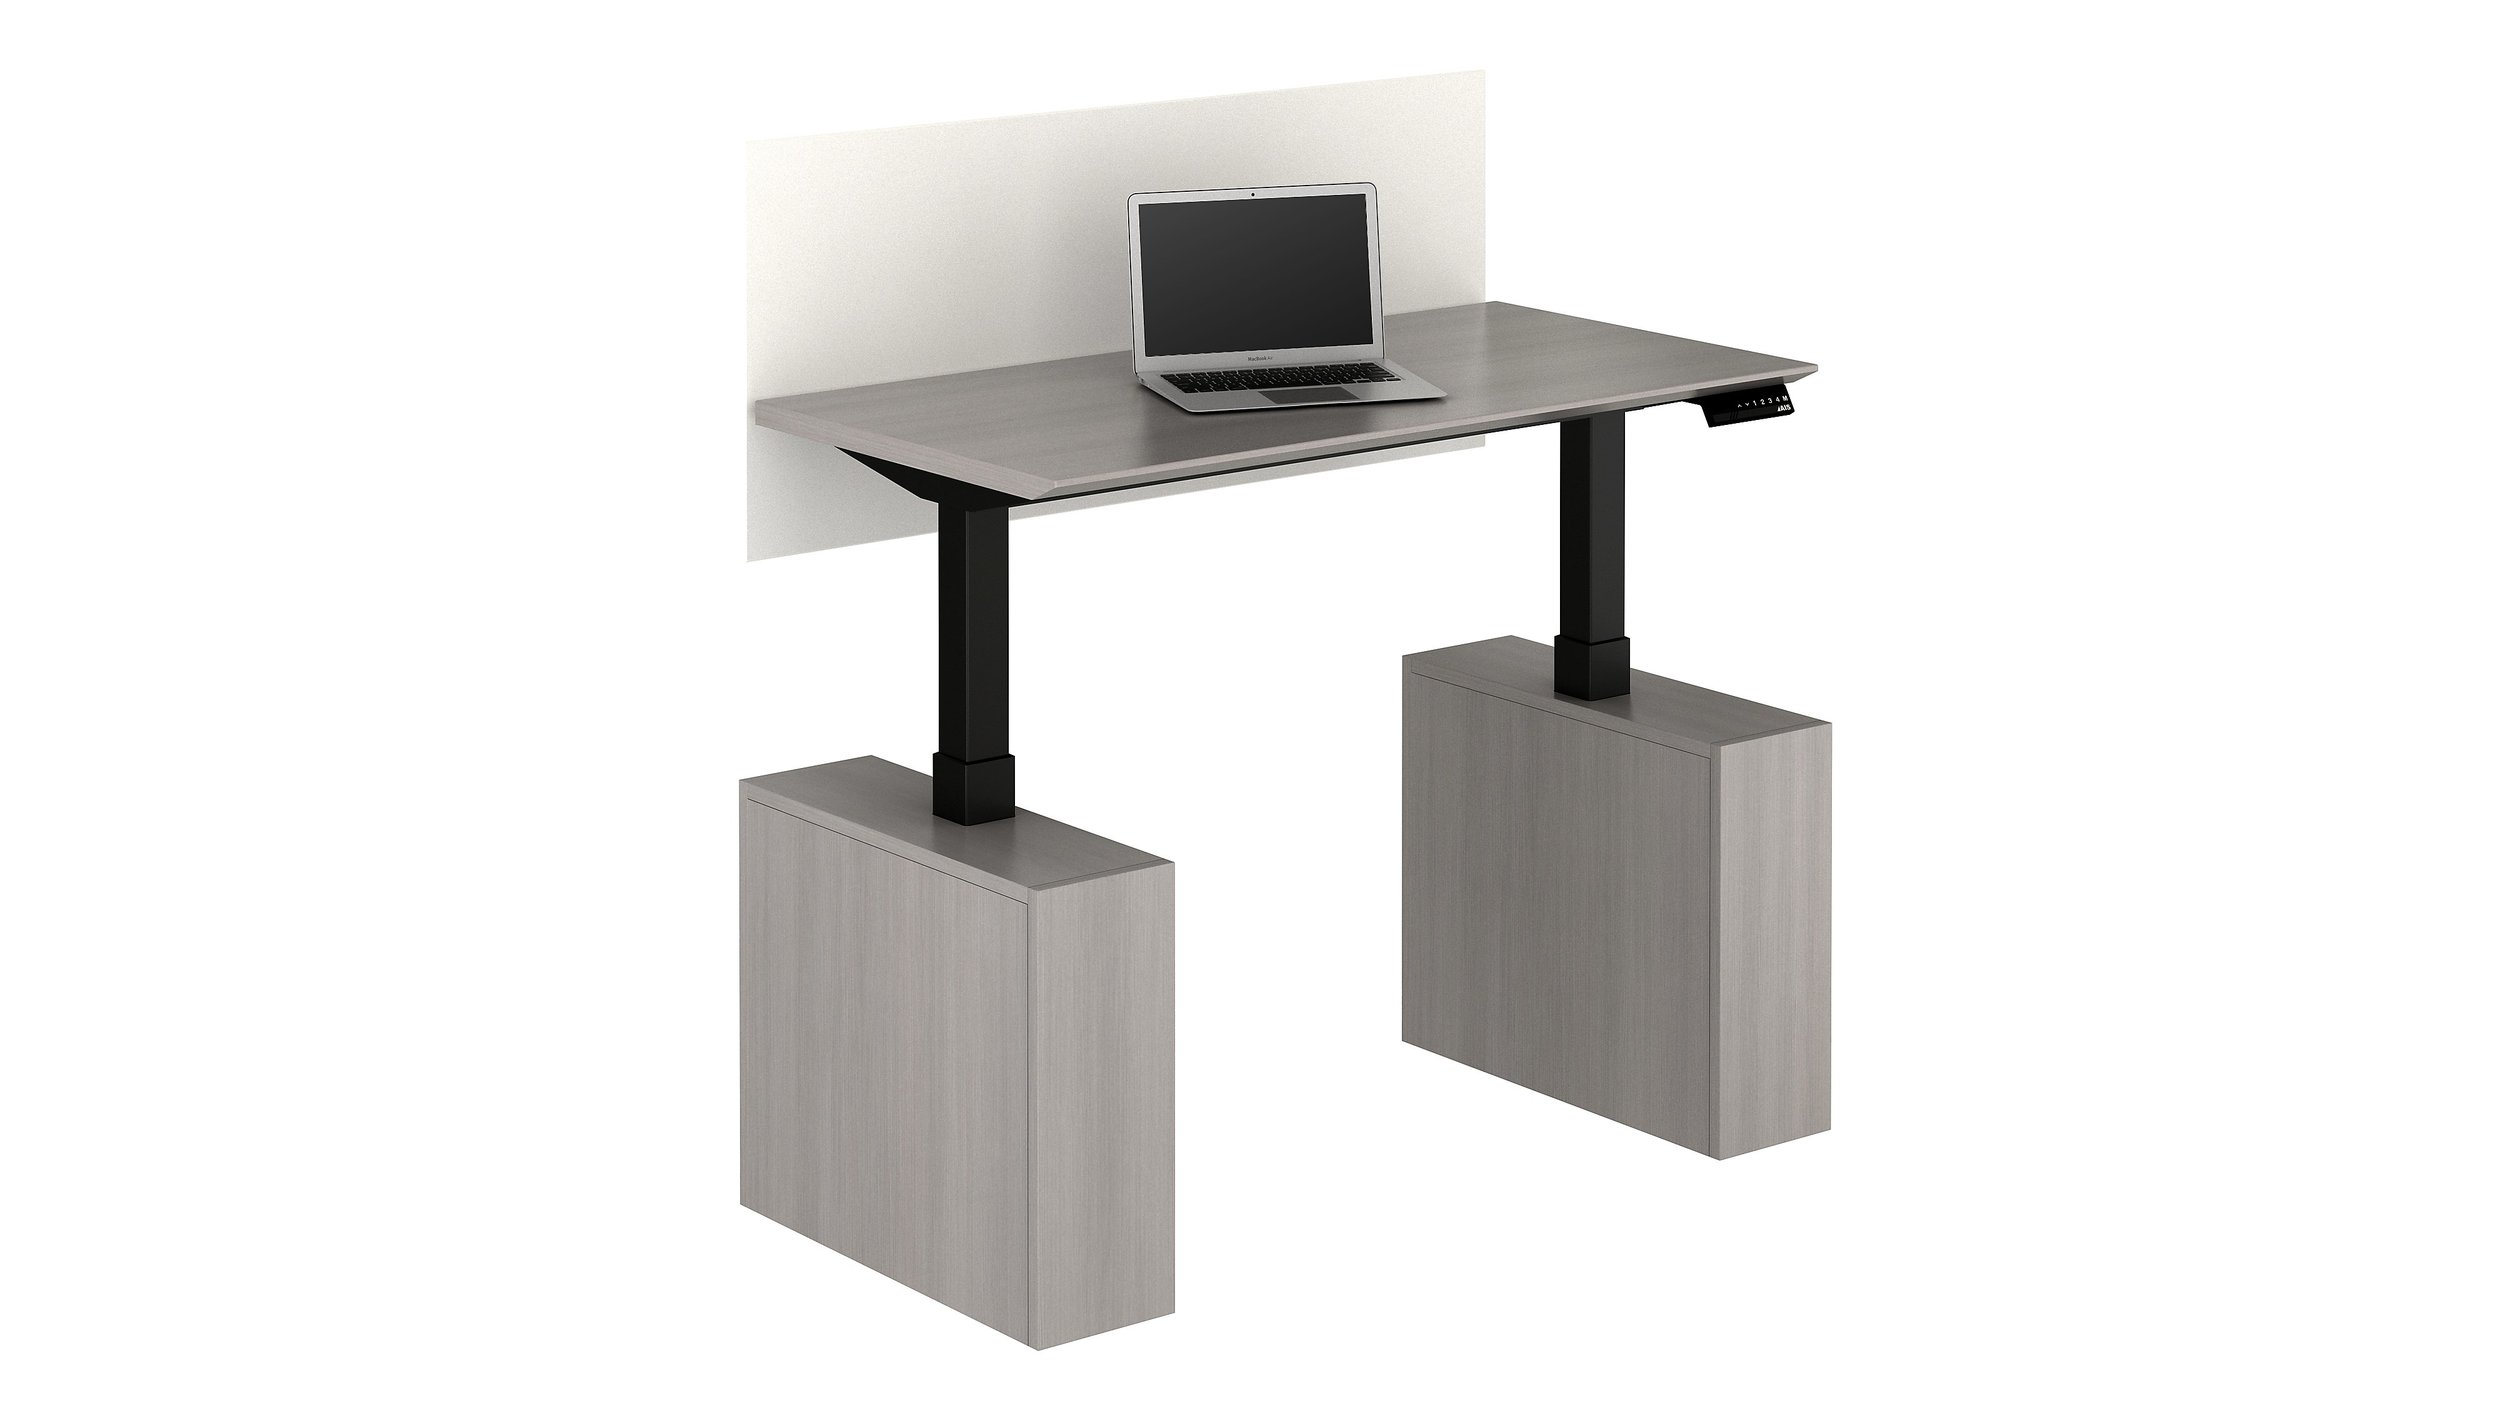 Hieght adjustable desk with privacy